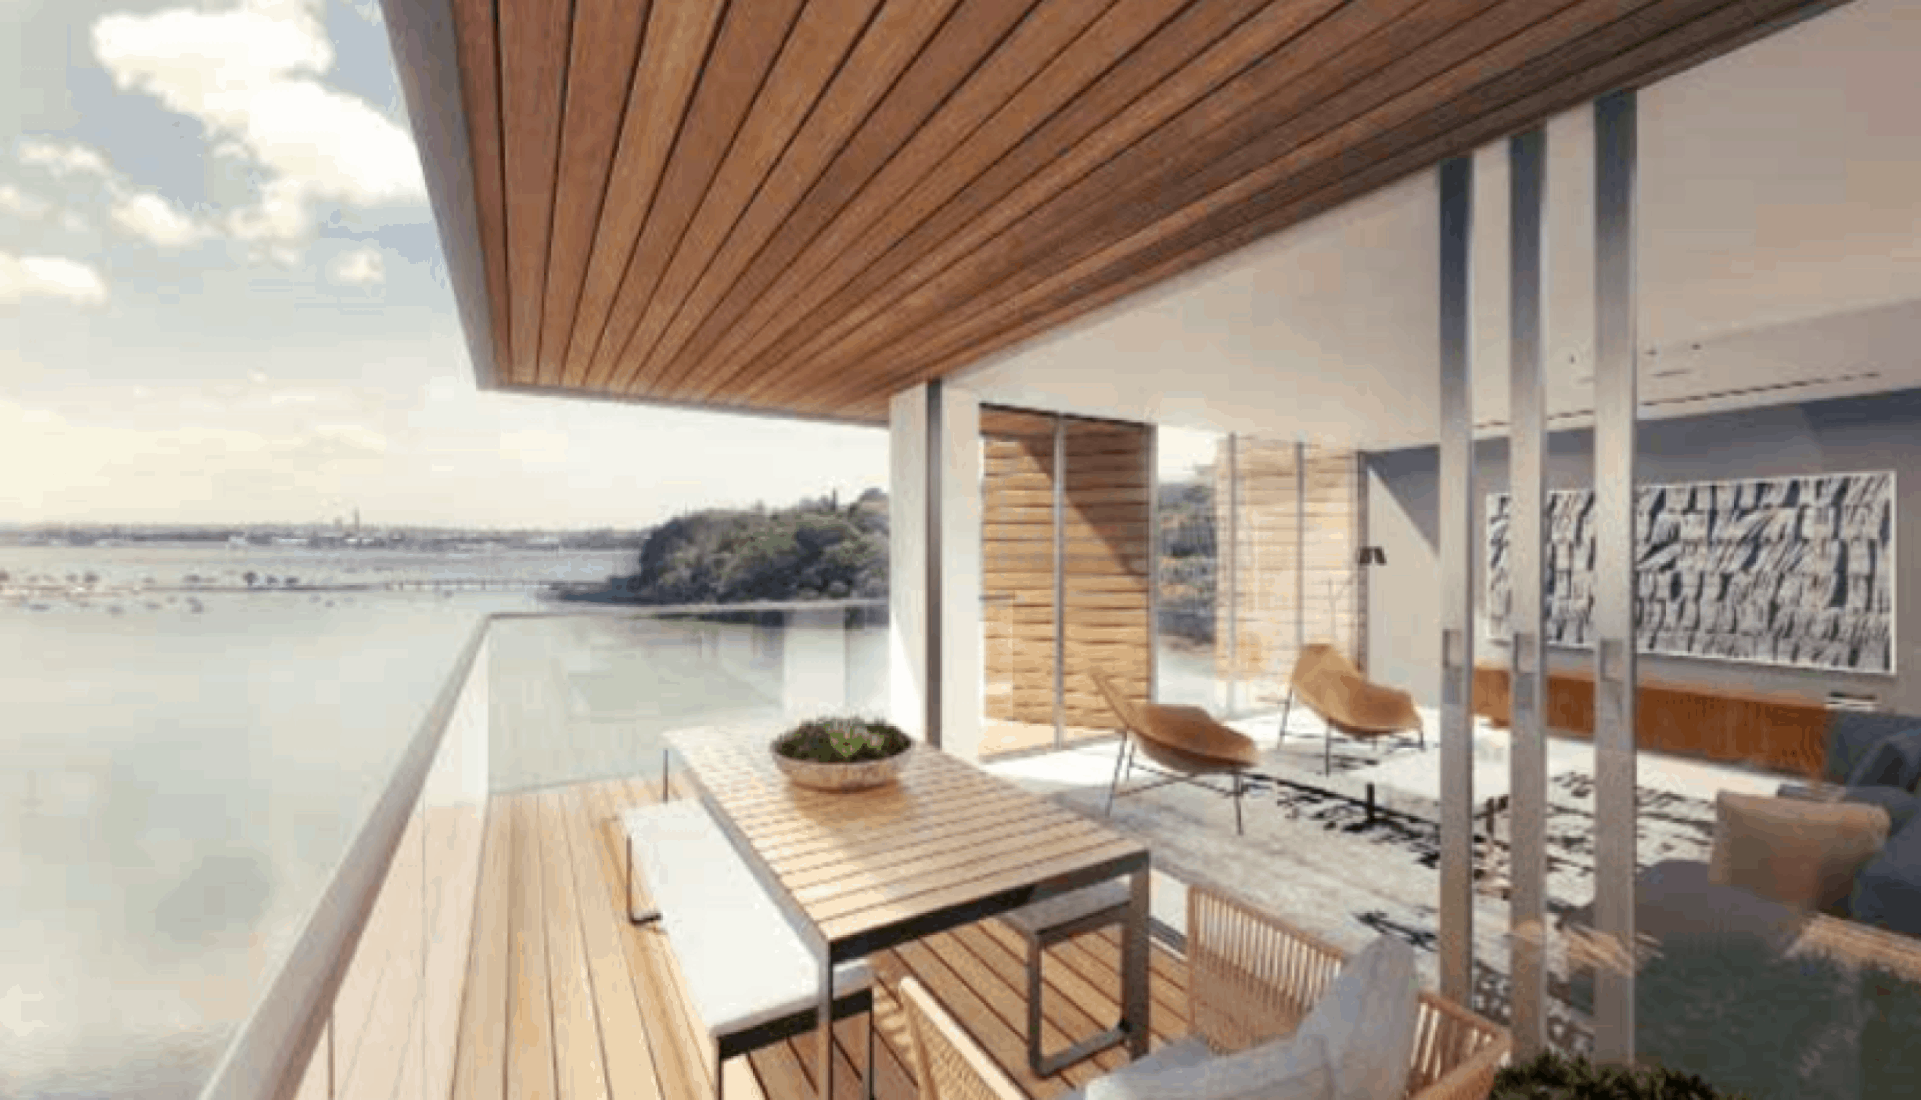 Orakei residential Apartments in Auckland drawing for the design of the deck